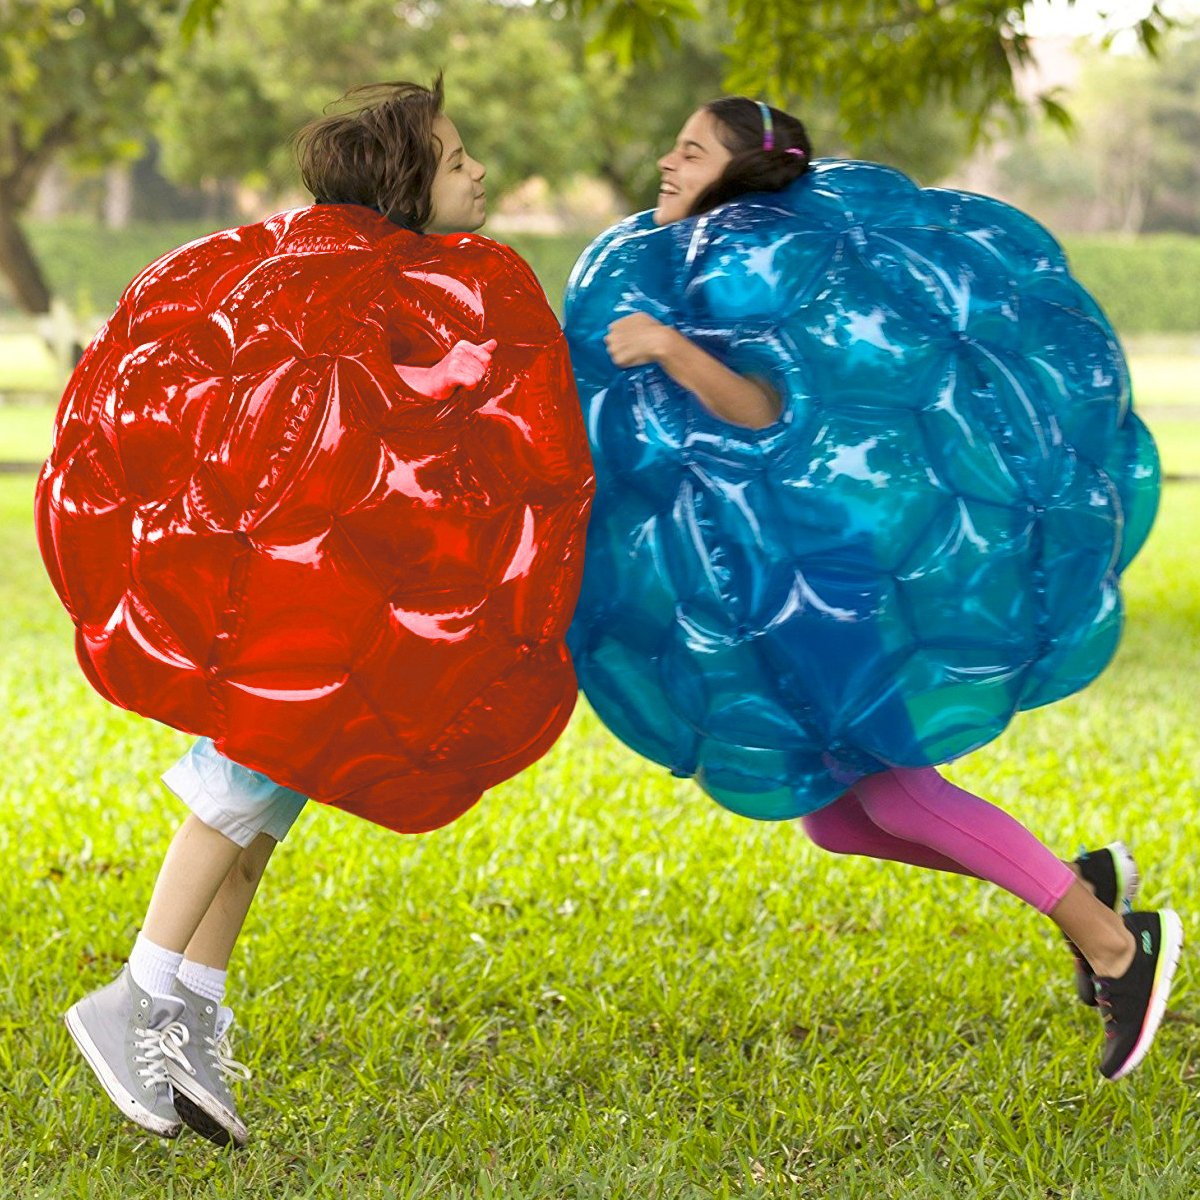 Inflatable 36'' Wearable Buddy Bumper Zorb Balls Heavy Duty Durable PVC Viny Bubble Soccer Outdoor Game (2-Pack,Blue&Red)) ... by Holleyweb (Image #3)